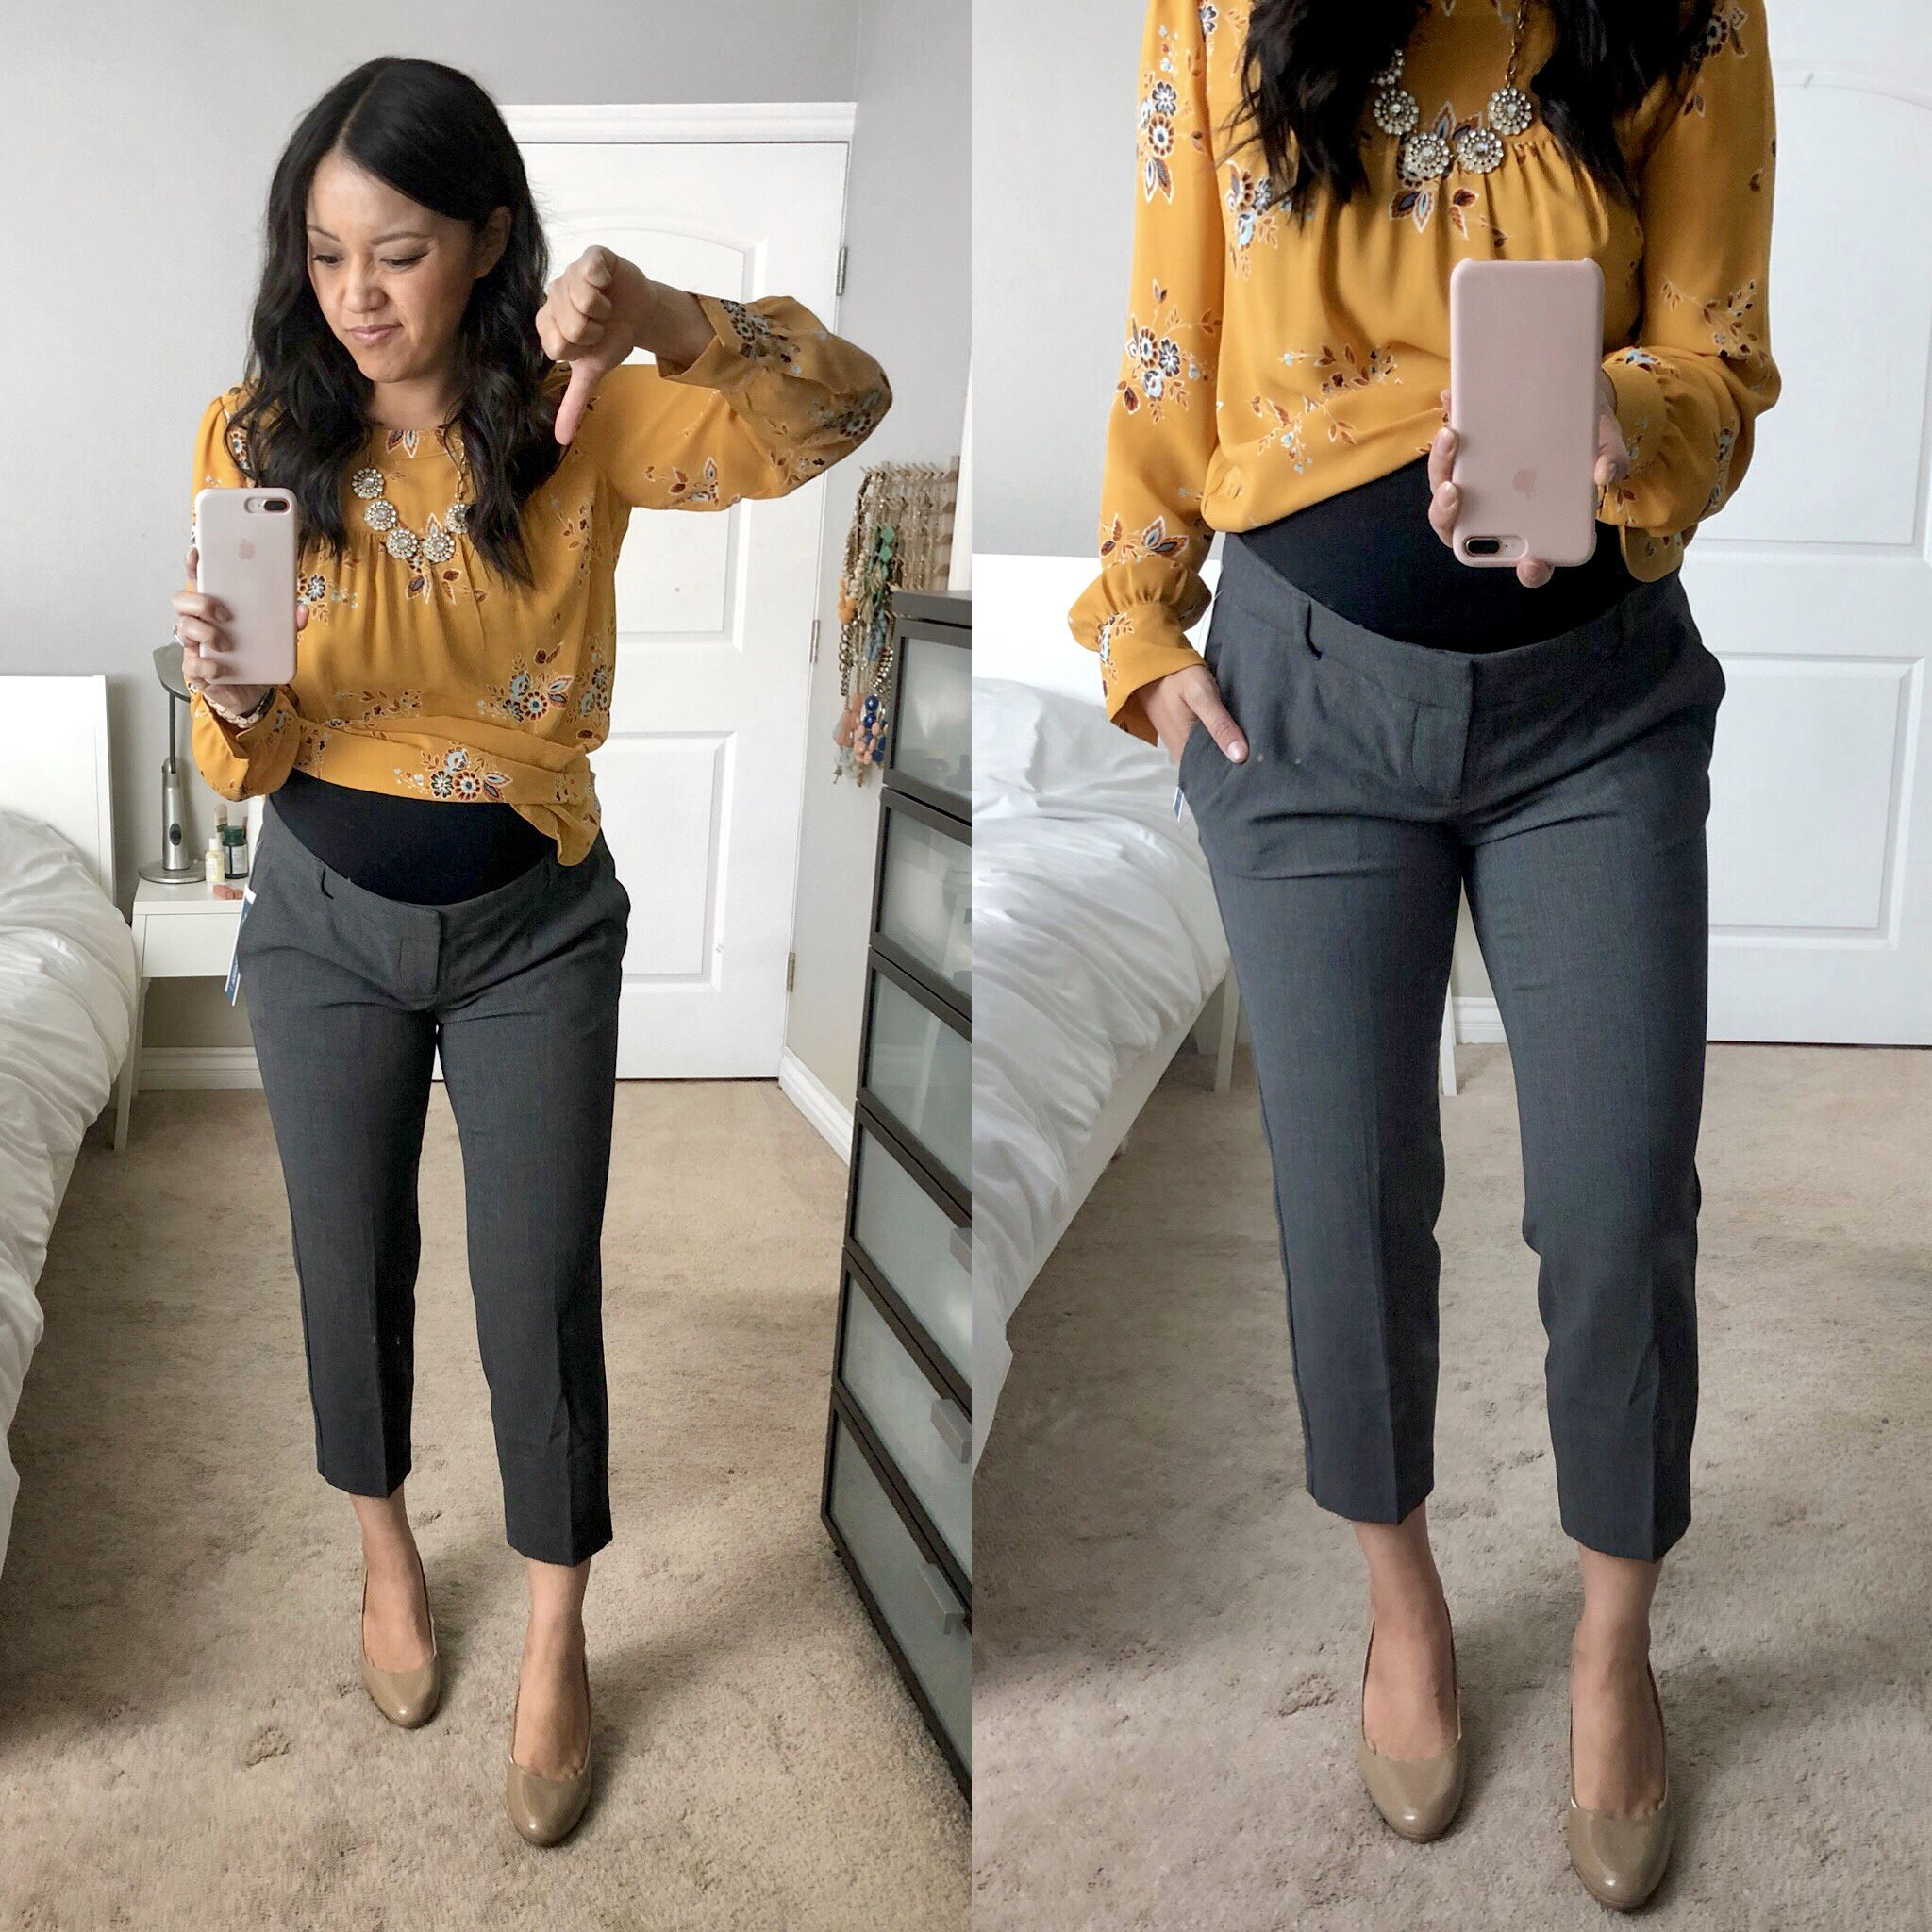 c52c71d8a84add REVIEWS: Athletic and Athleisure Gear + Business Casual Maternity Pants,  Jeans, and More!